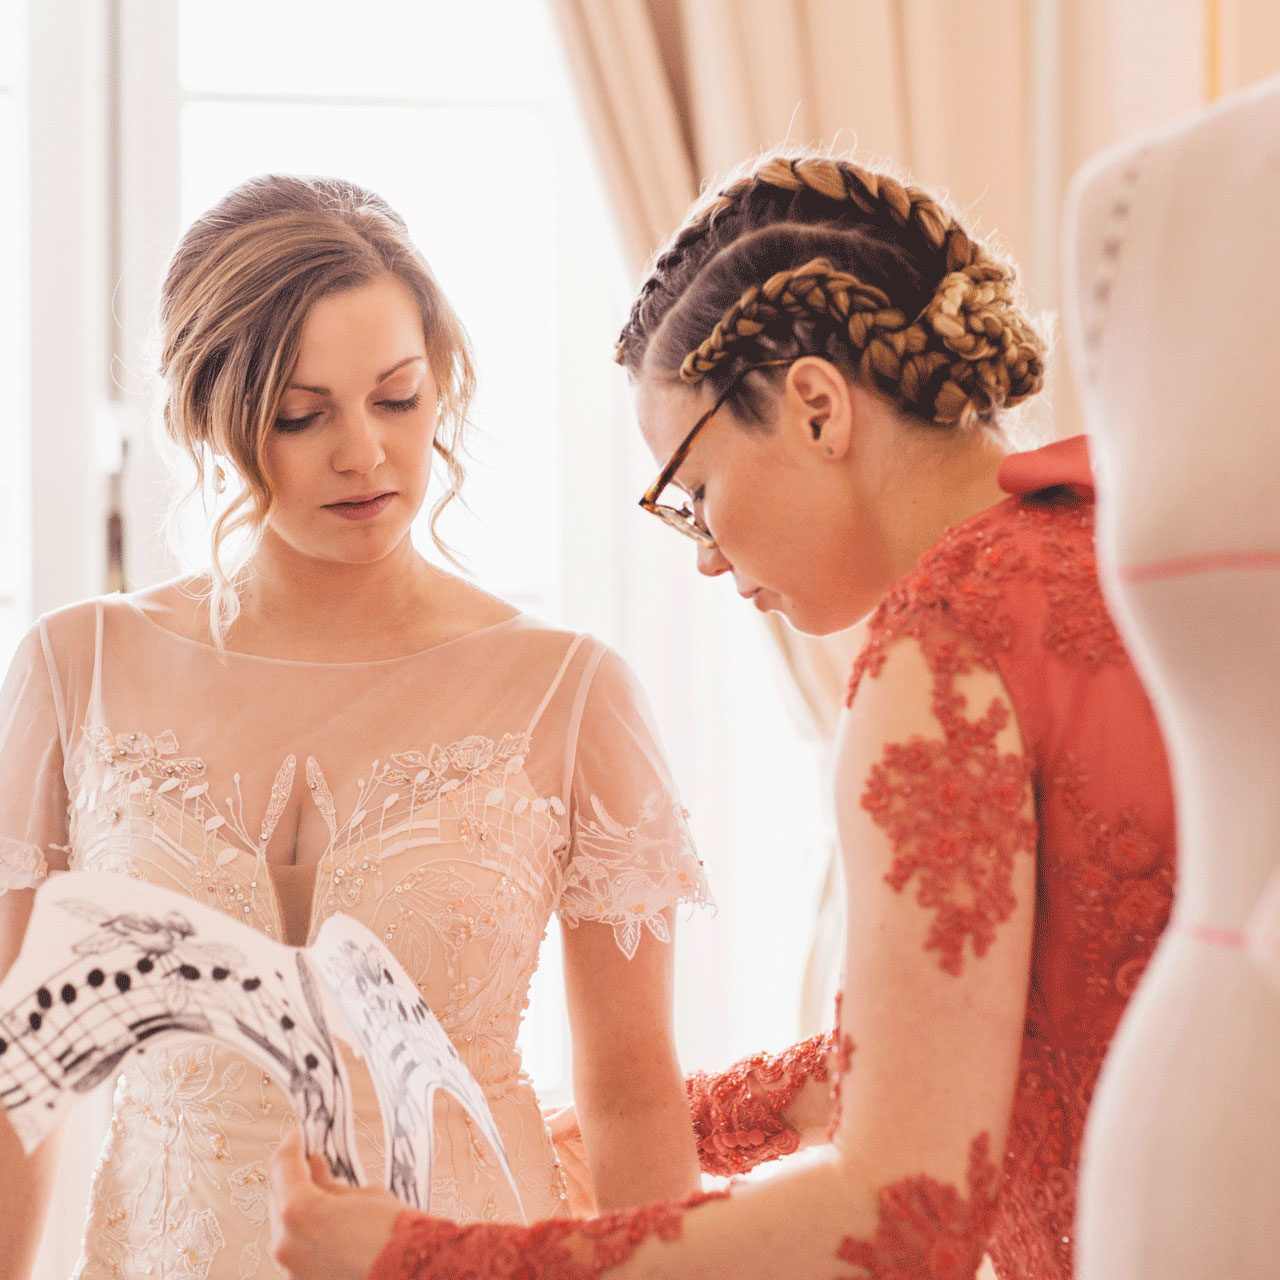 Designer sharing thoughts with the bride about adding an extra touch to the wedding dress